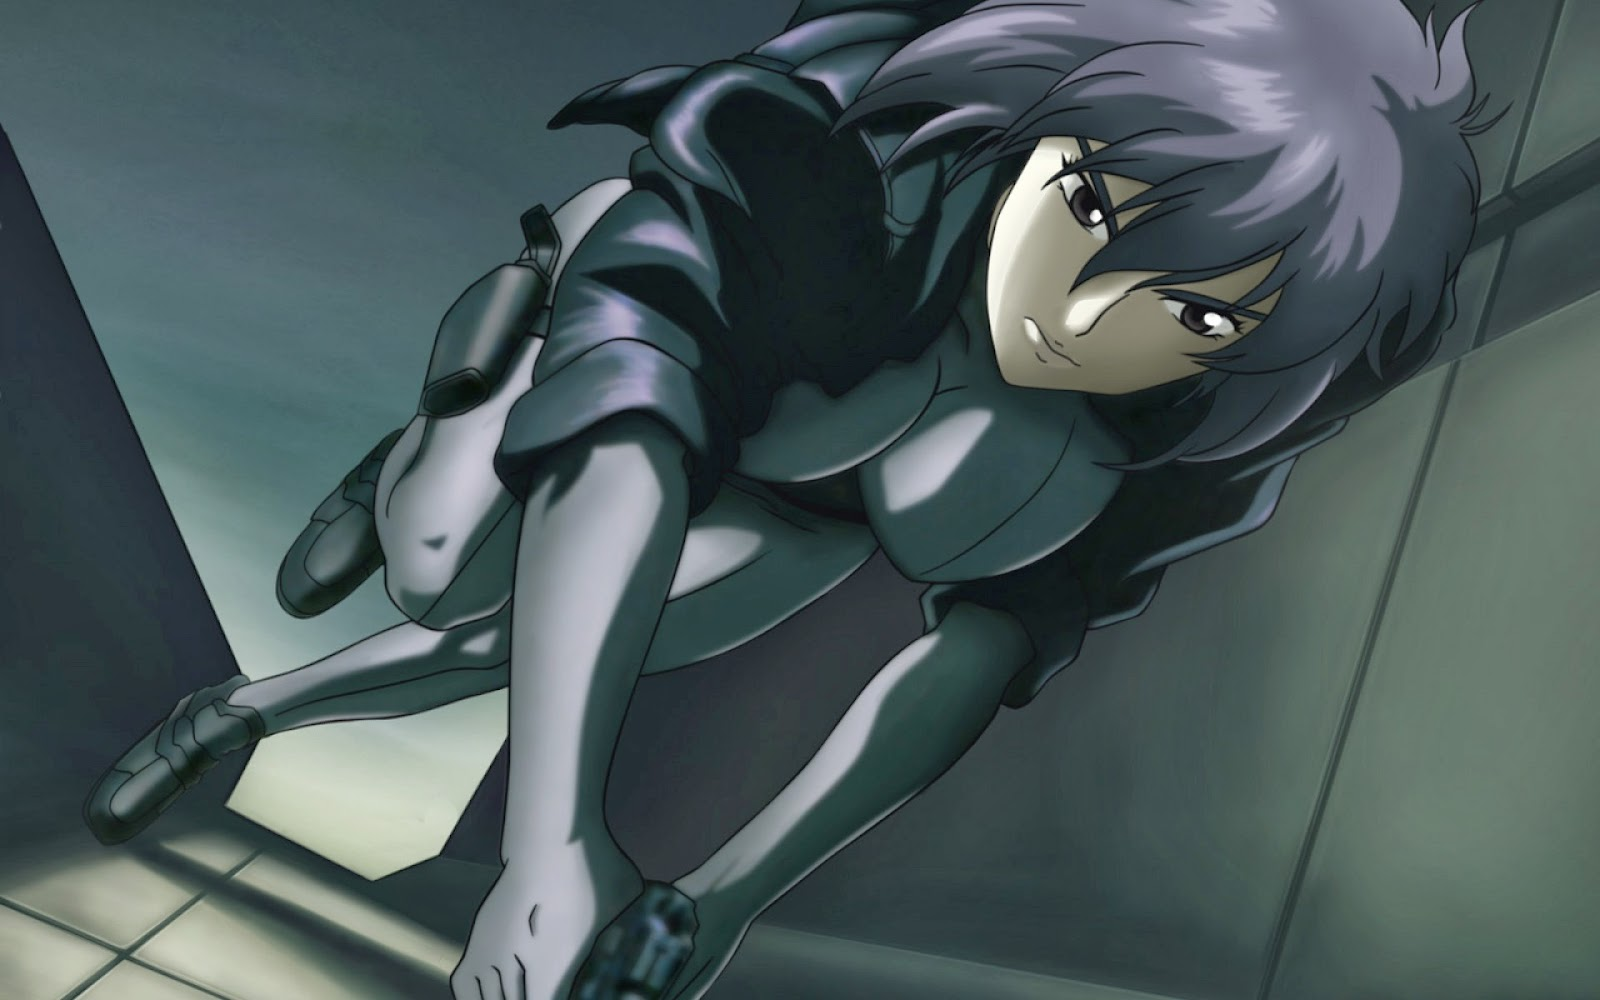 Motoko Kusanagi - Ghost In The Desktop Wallpaper